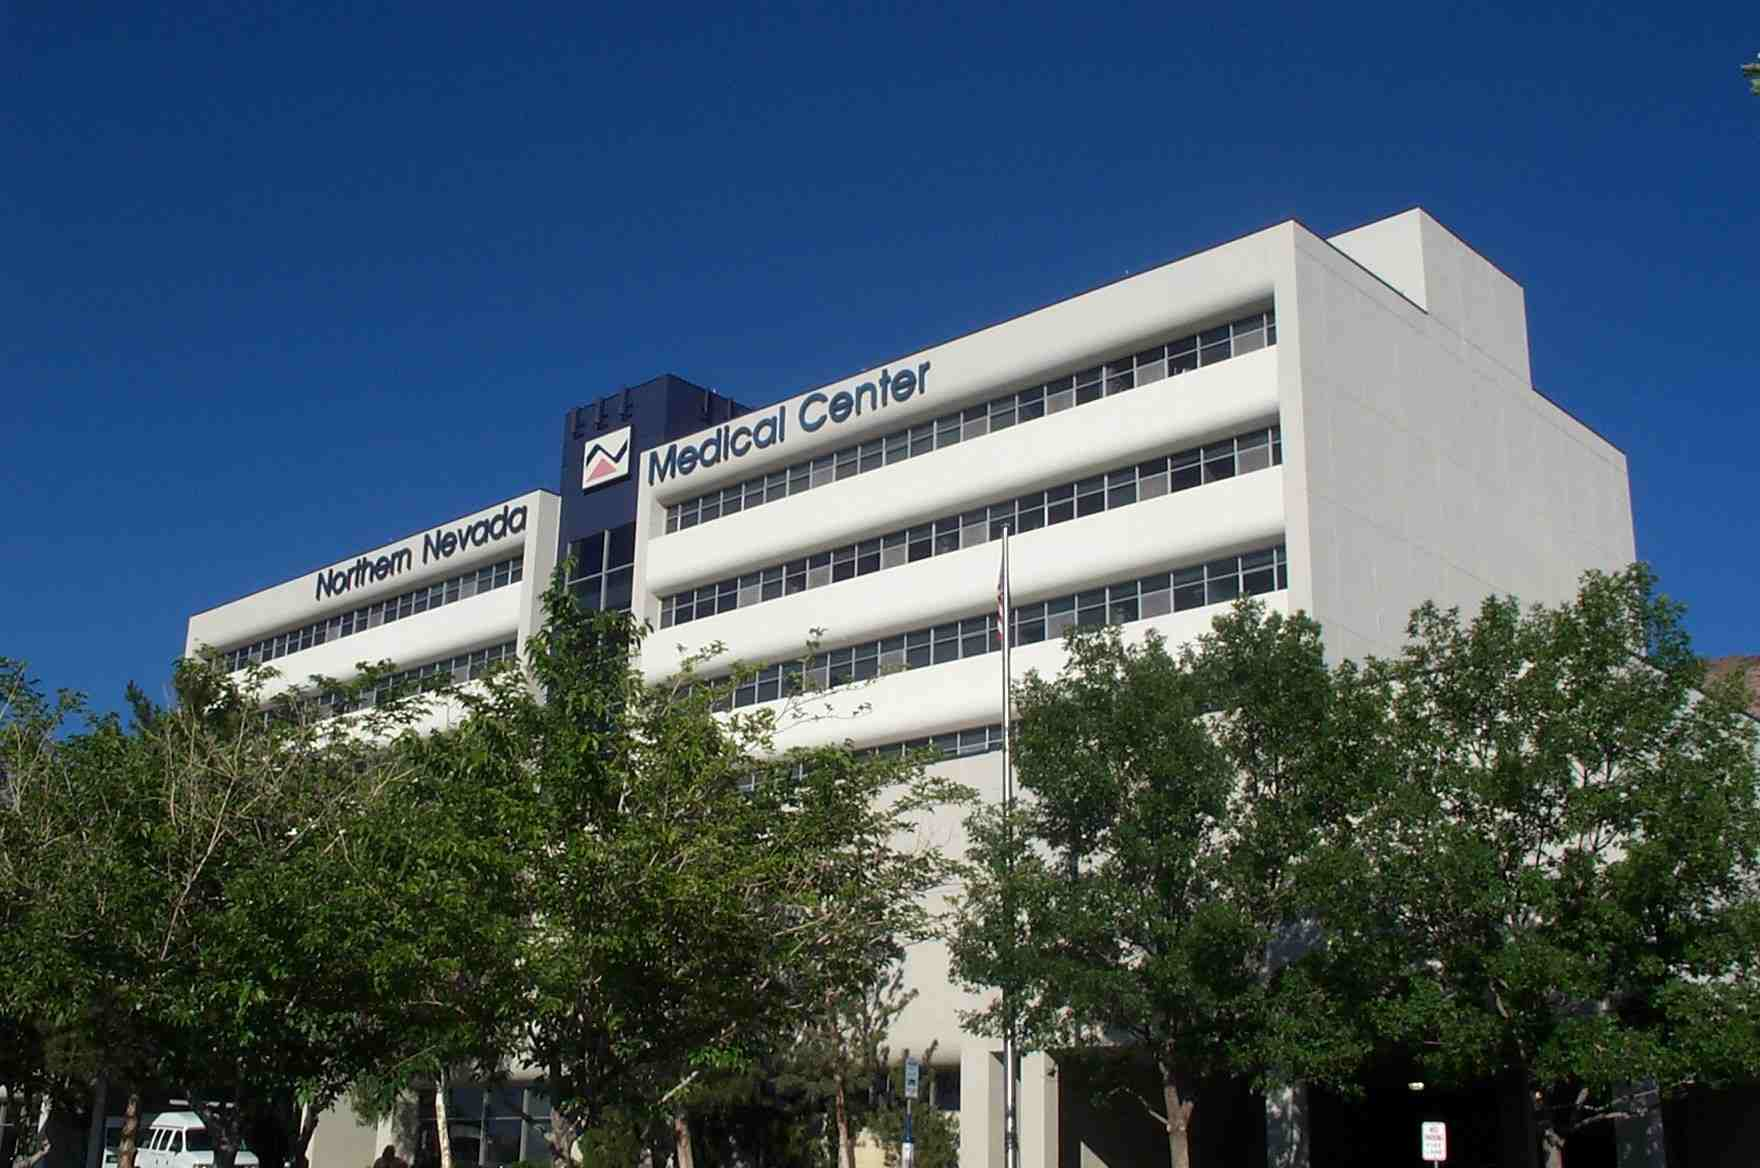 Northern Nevada Medical Center Image